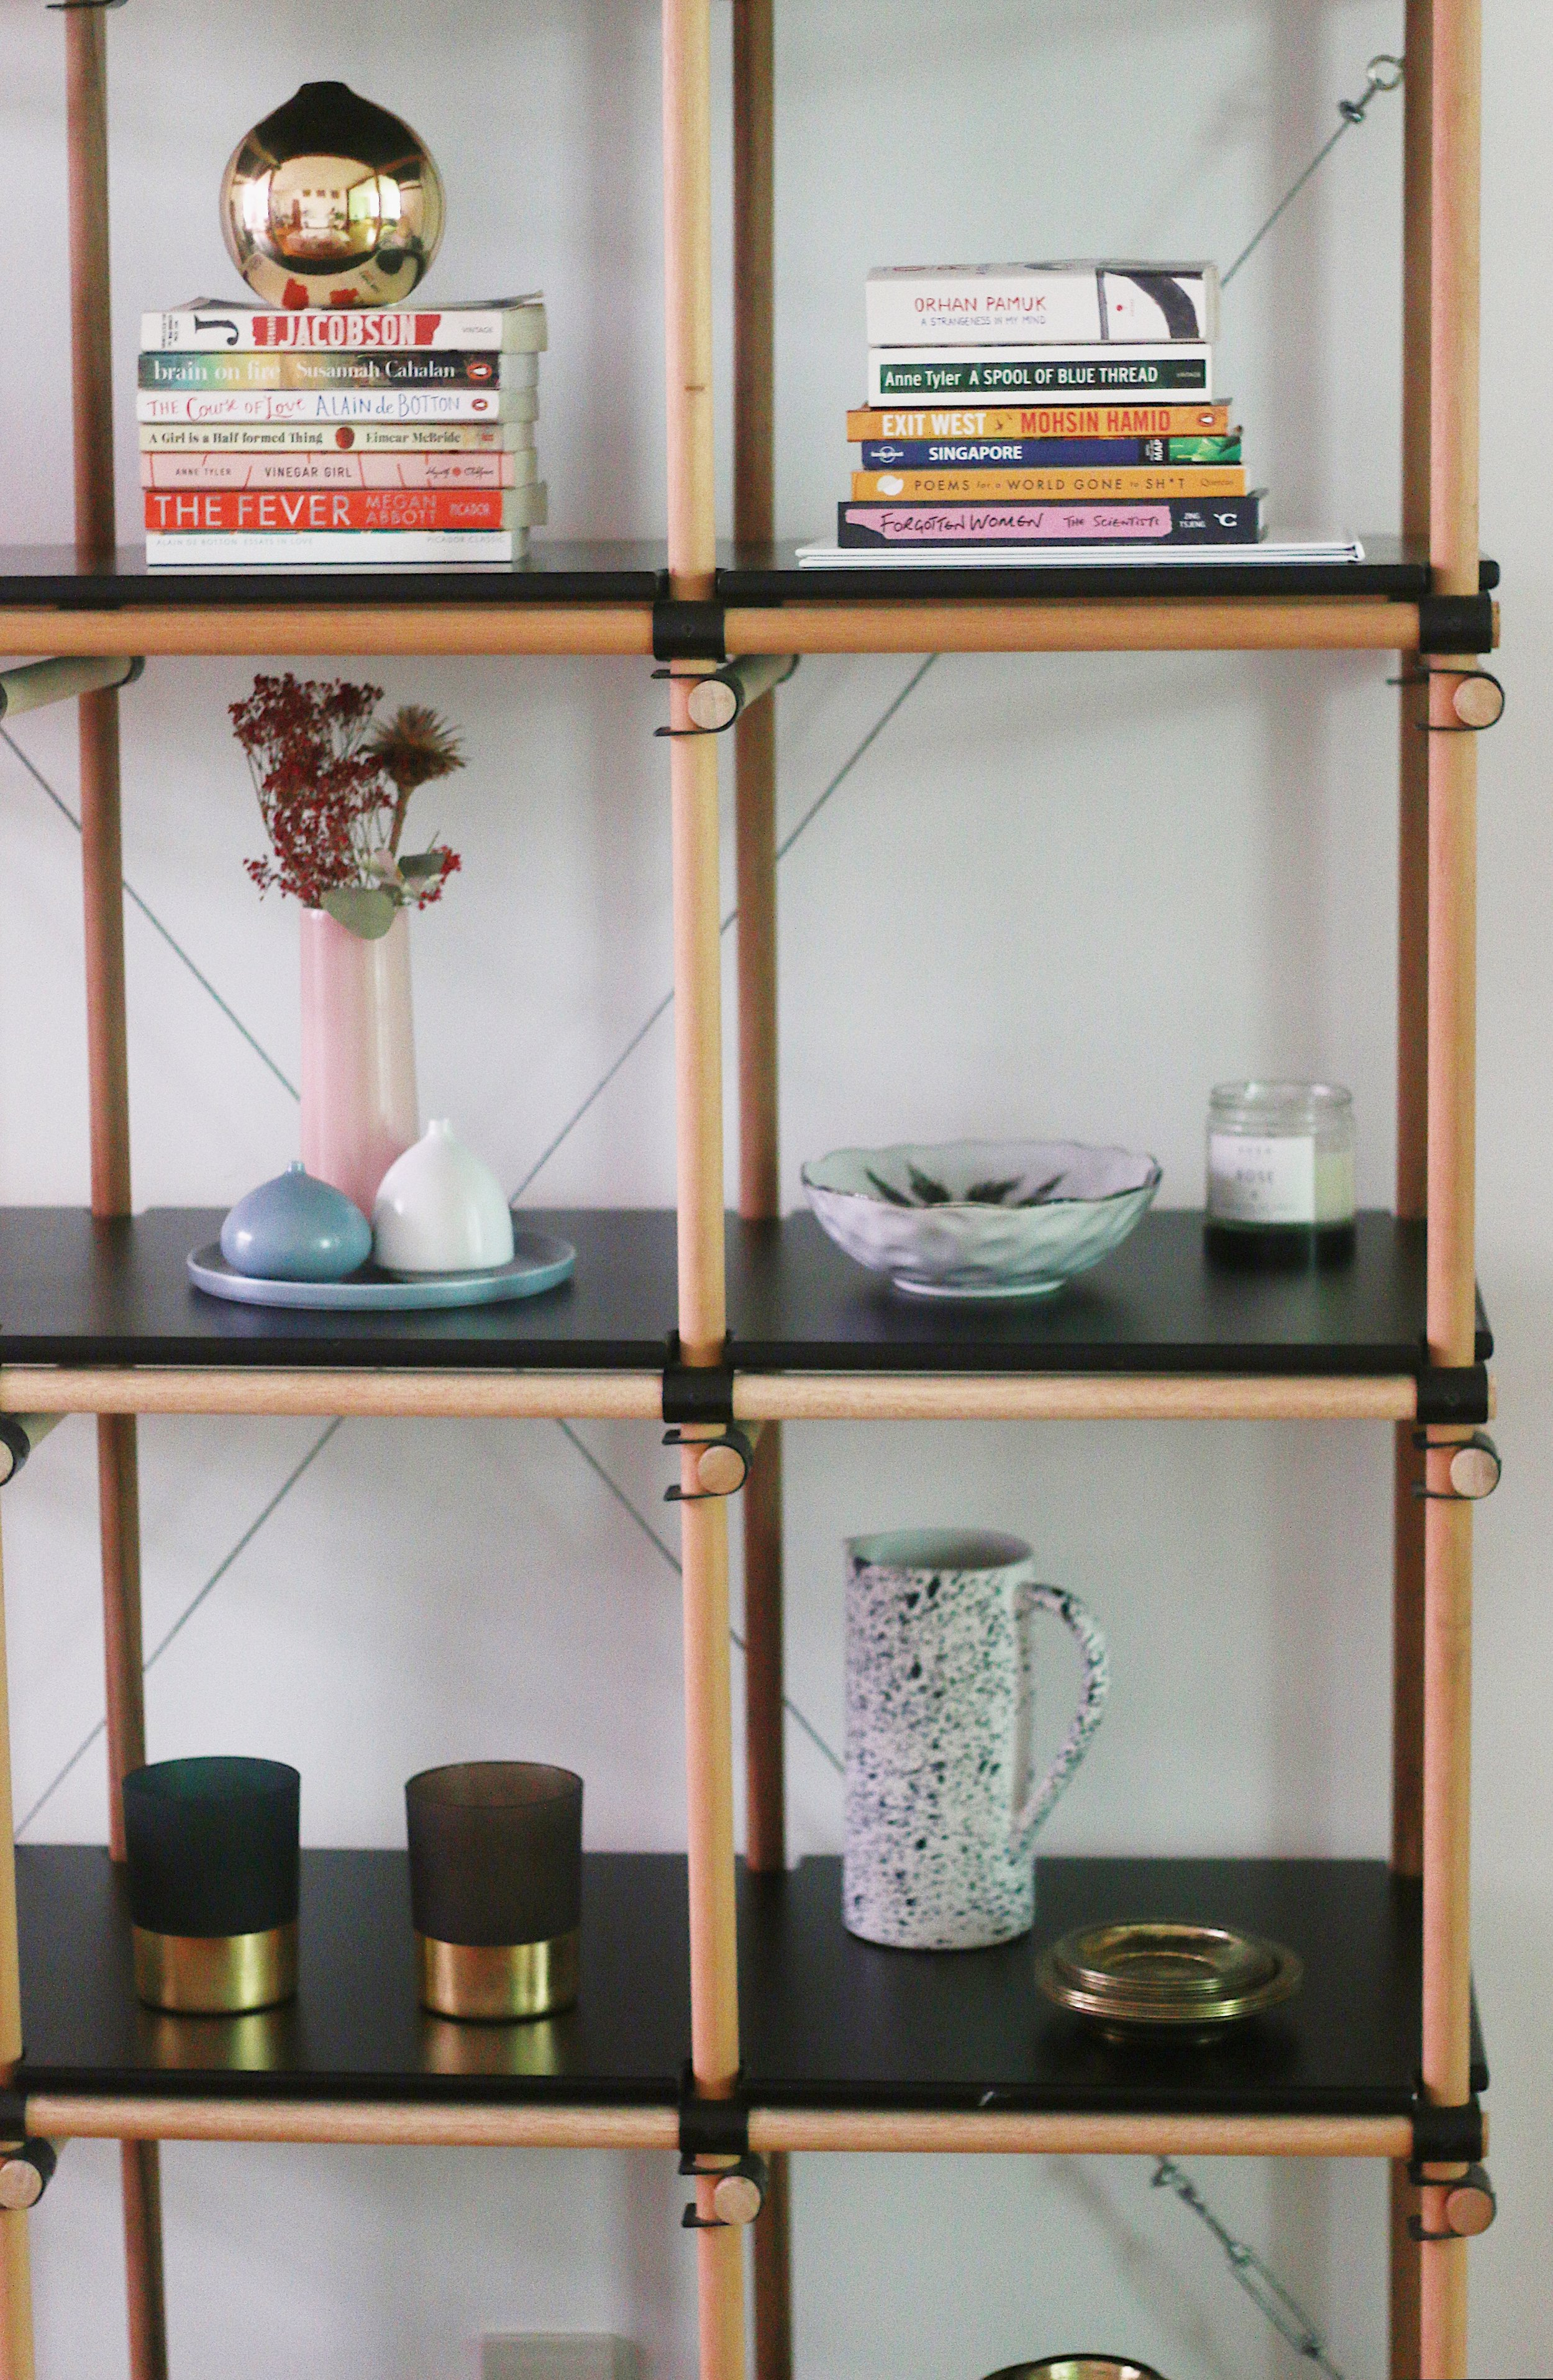 Organised Shelving in Cool Bright Apartment